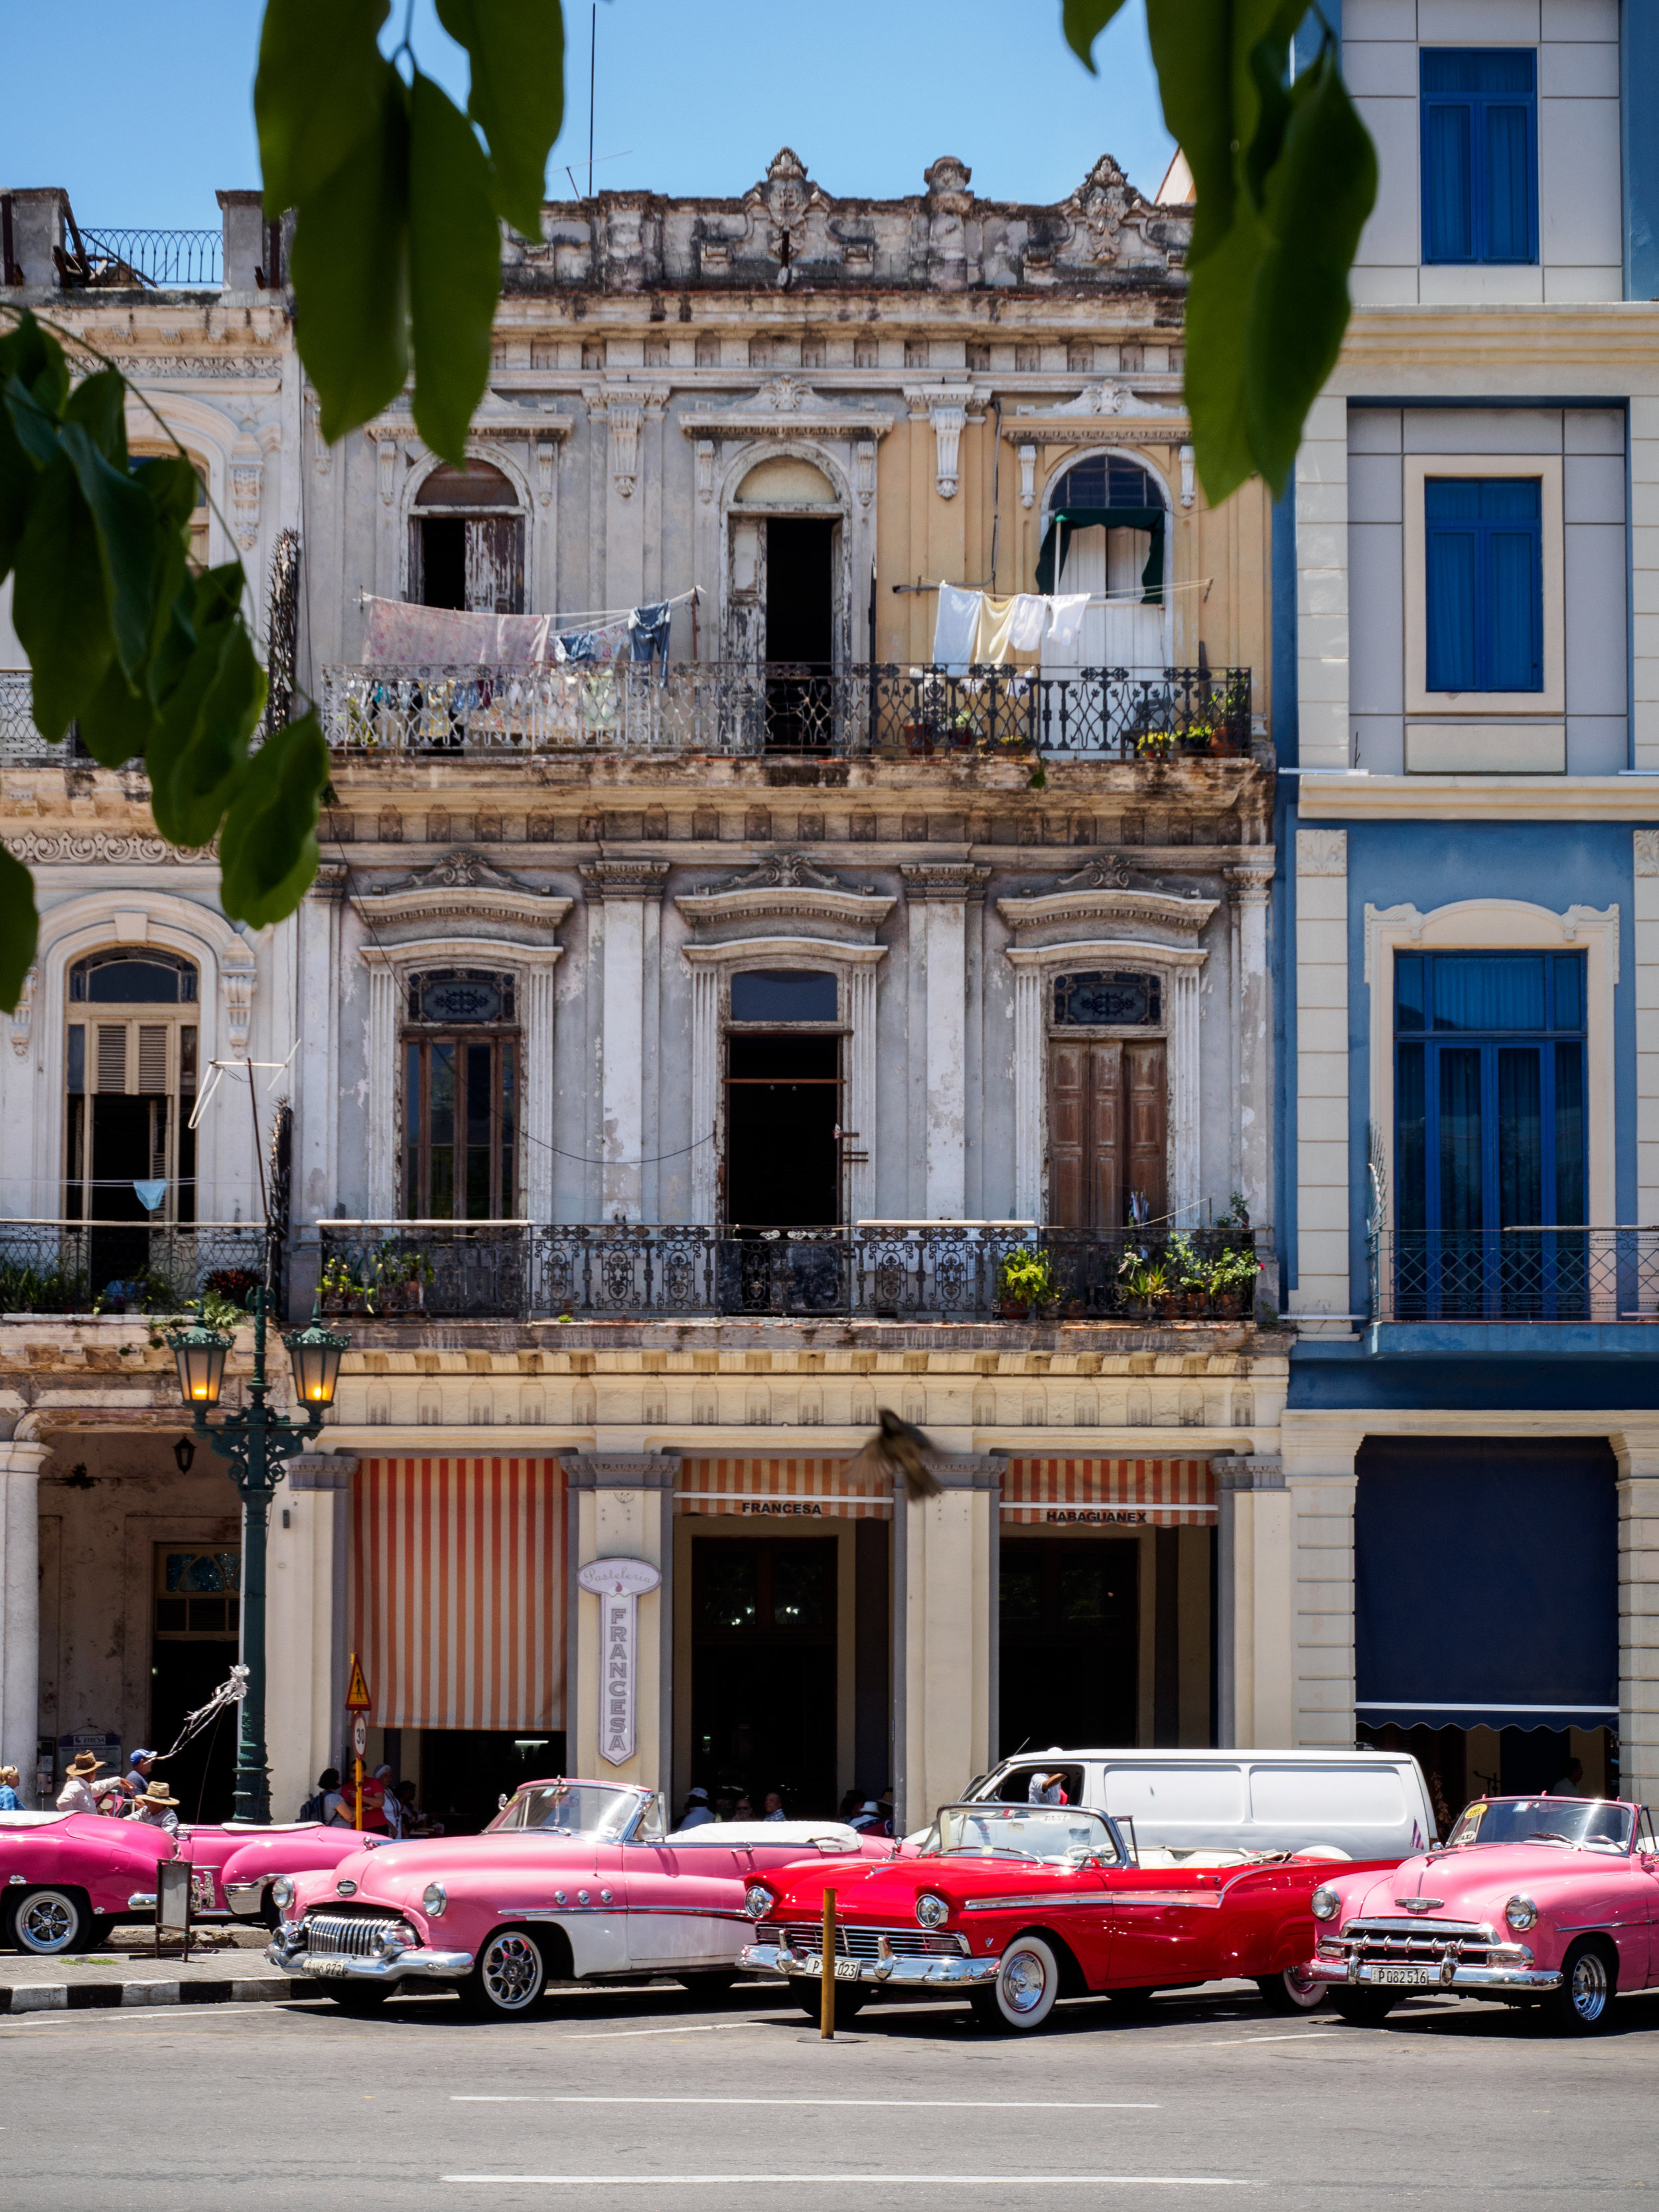 Classic cars waiting for business